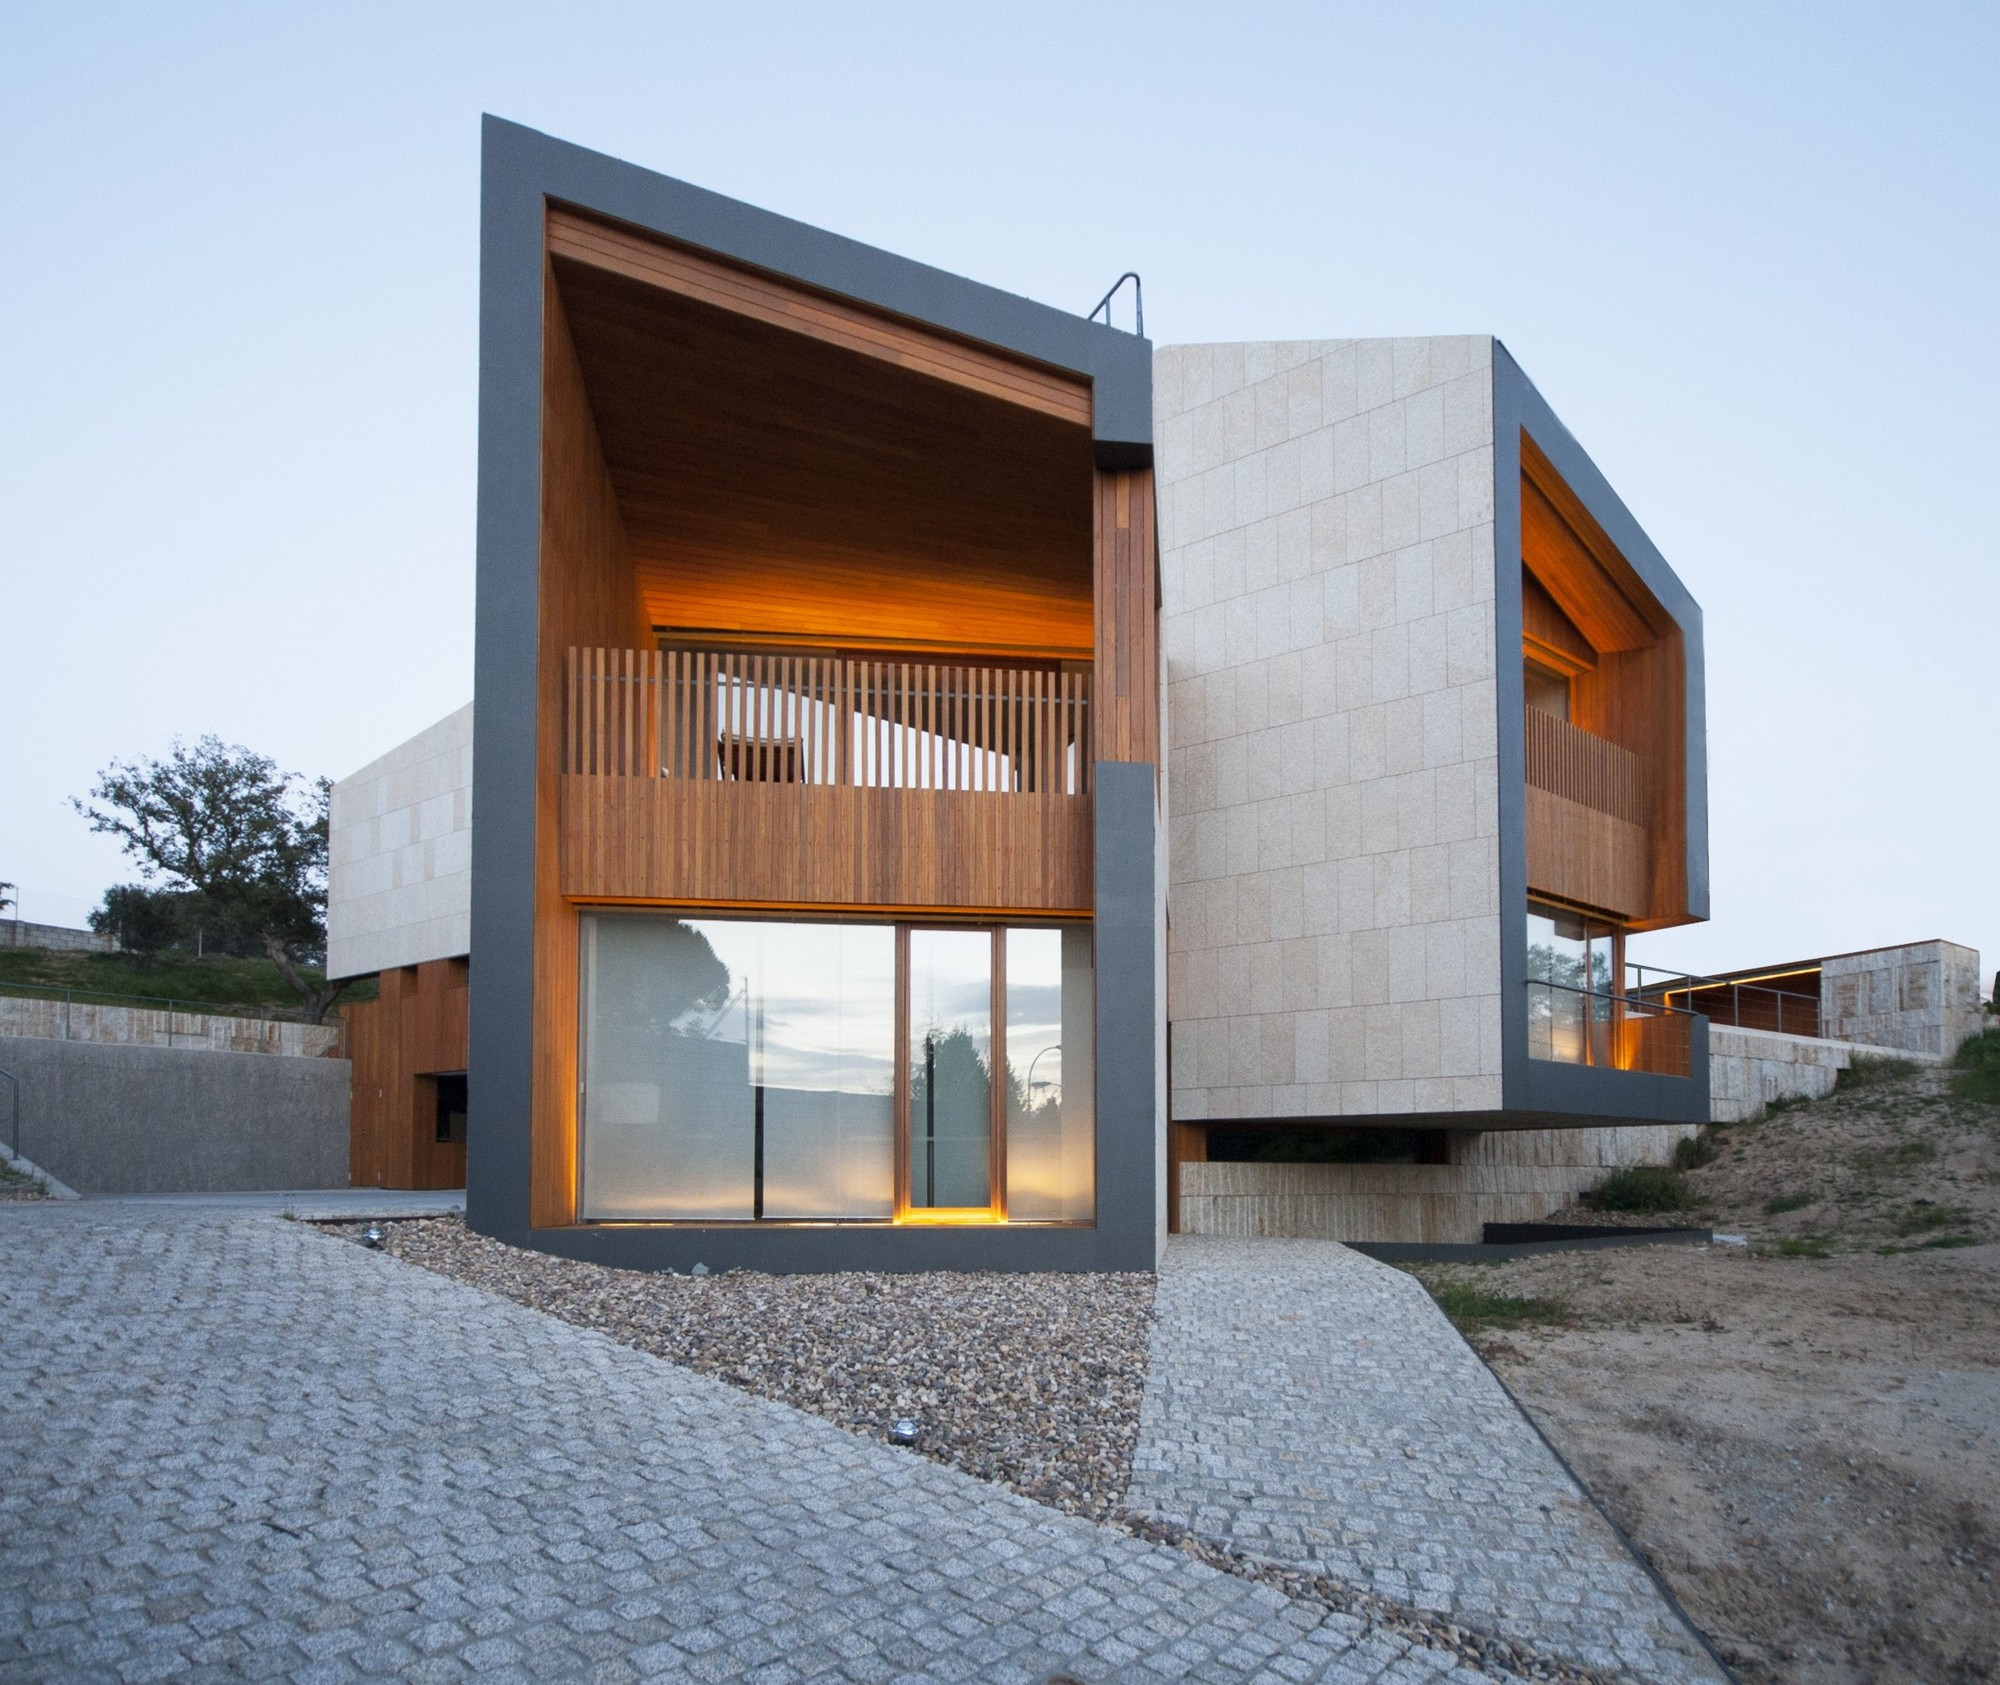 Studio Dwelling / cmA Arquitectos, Courtesy of cmA Arquitectos